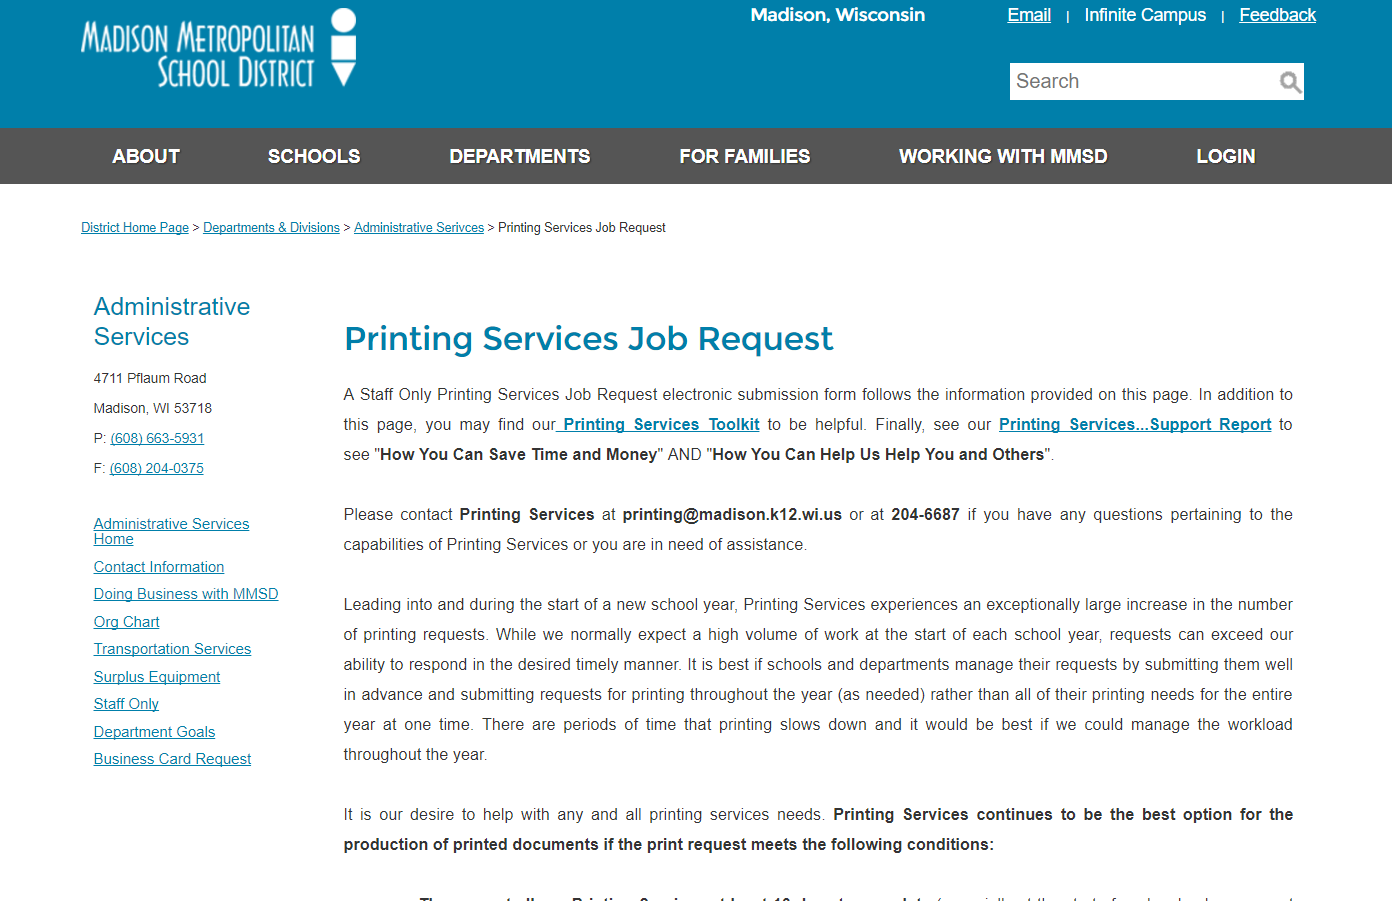 shrunken screenshot of the mmsd printing services page